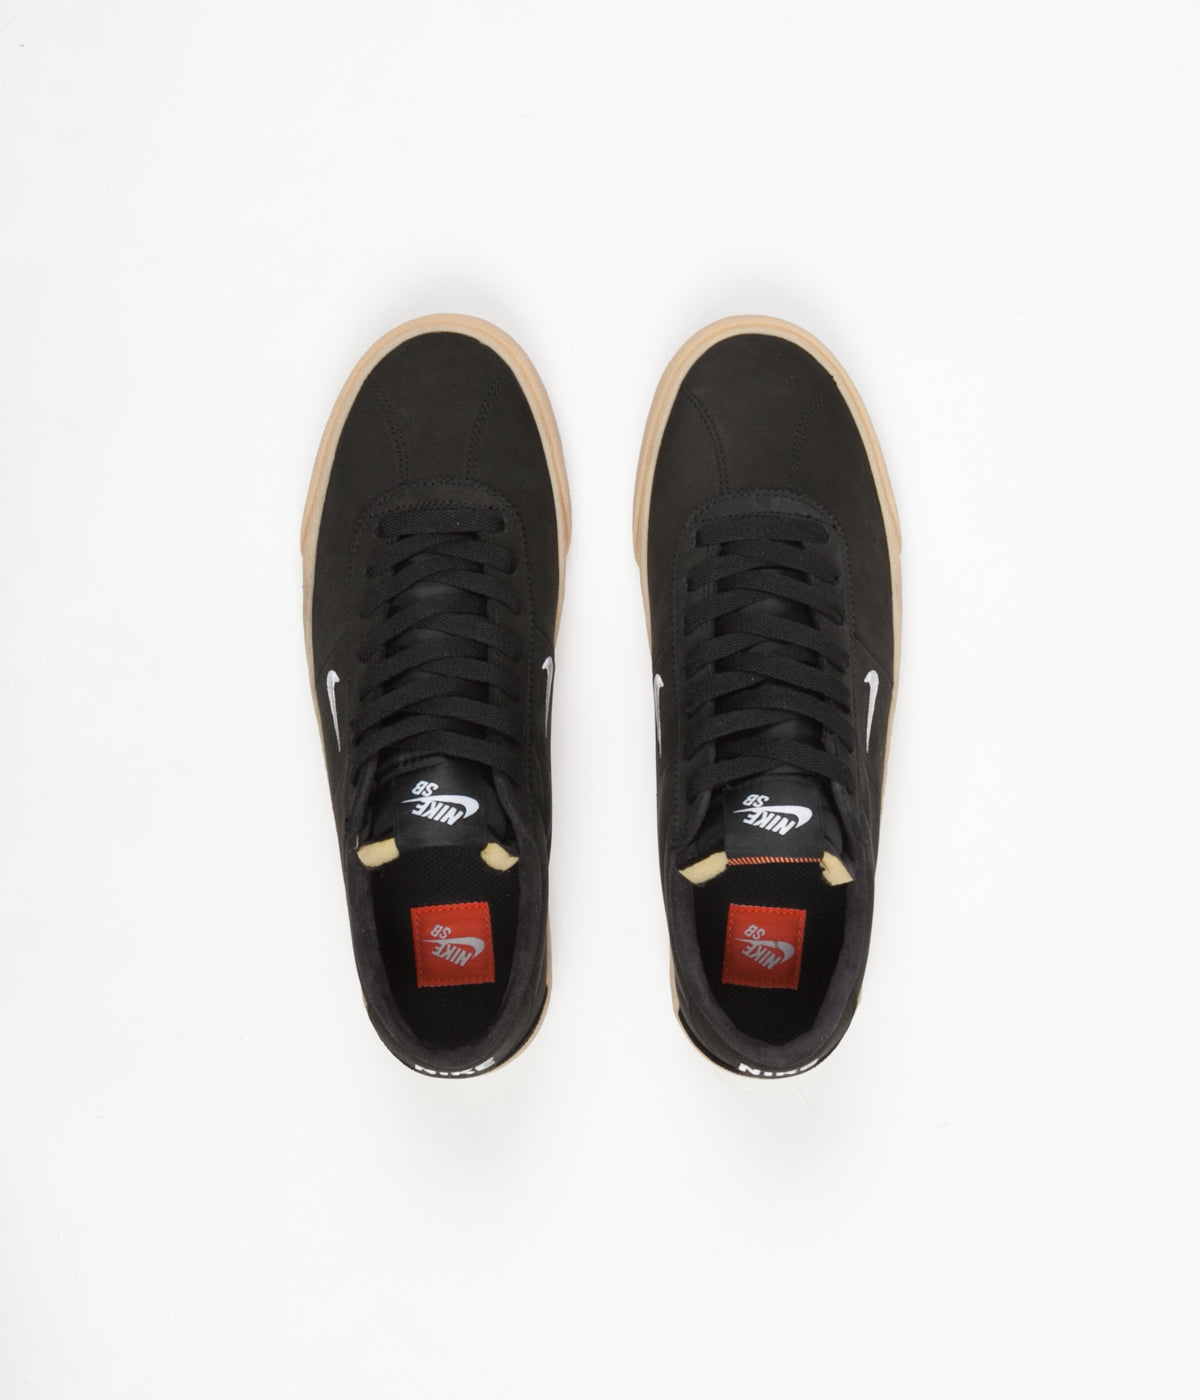 reputable site 60ed4 6f0a7 Nike SB Orange Label Bruin Ultra Shoes - Black   White - Safety Orange ...